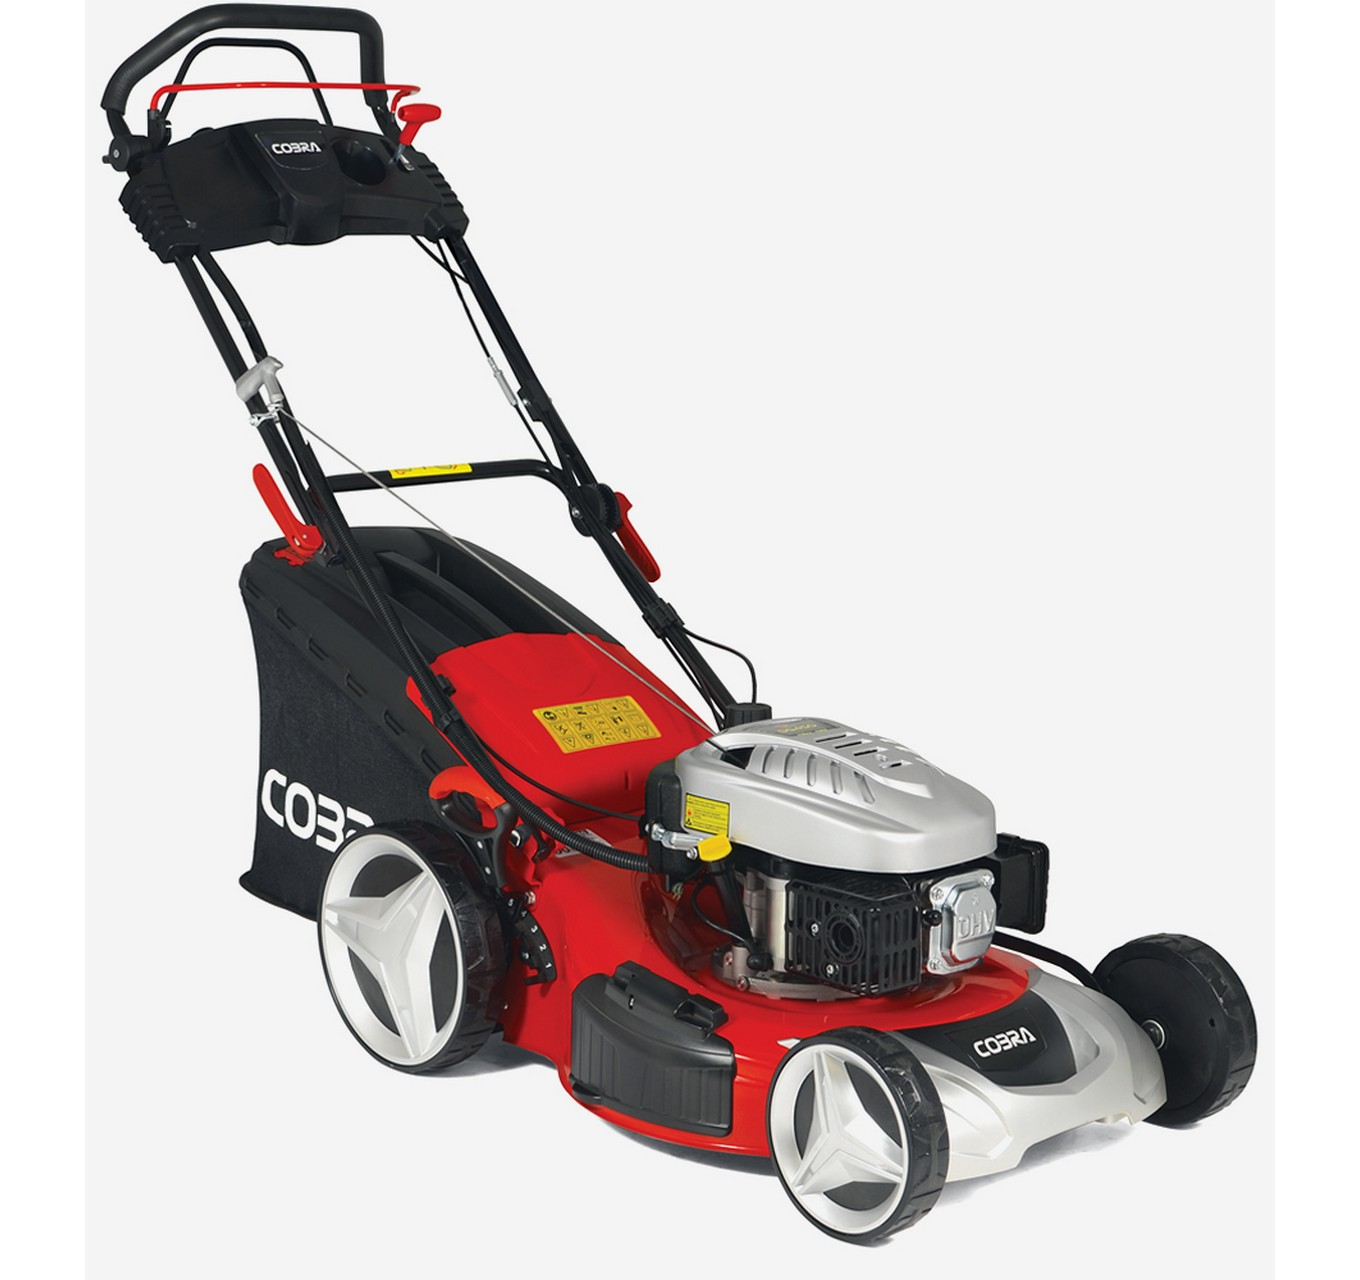 MX484SPCE Petrol Lawnmower 19